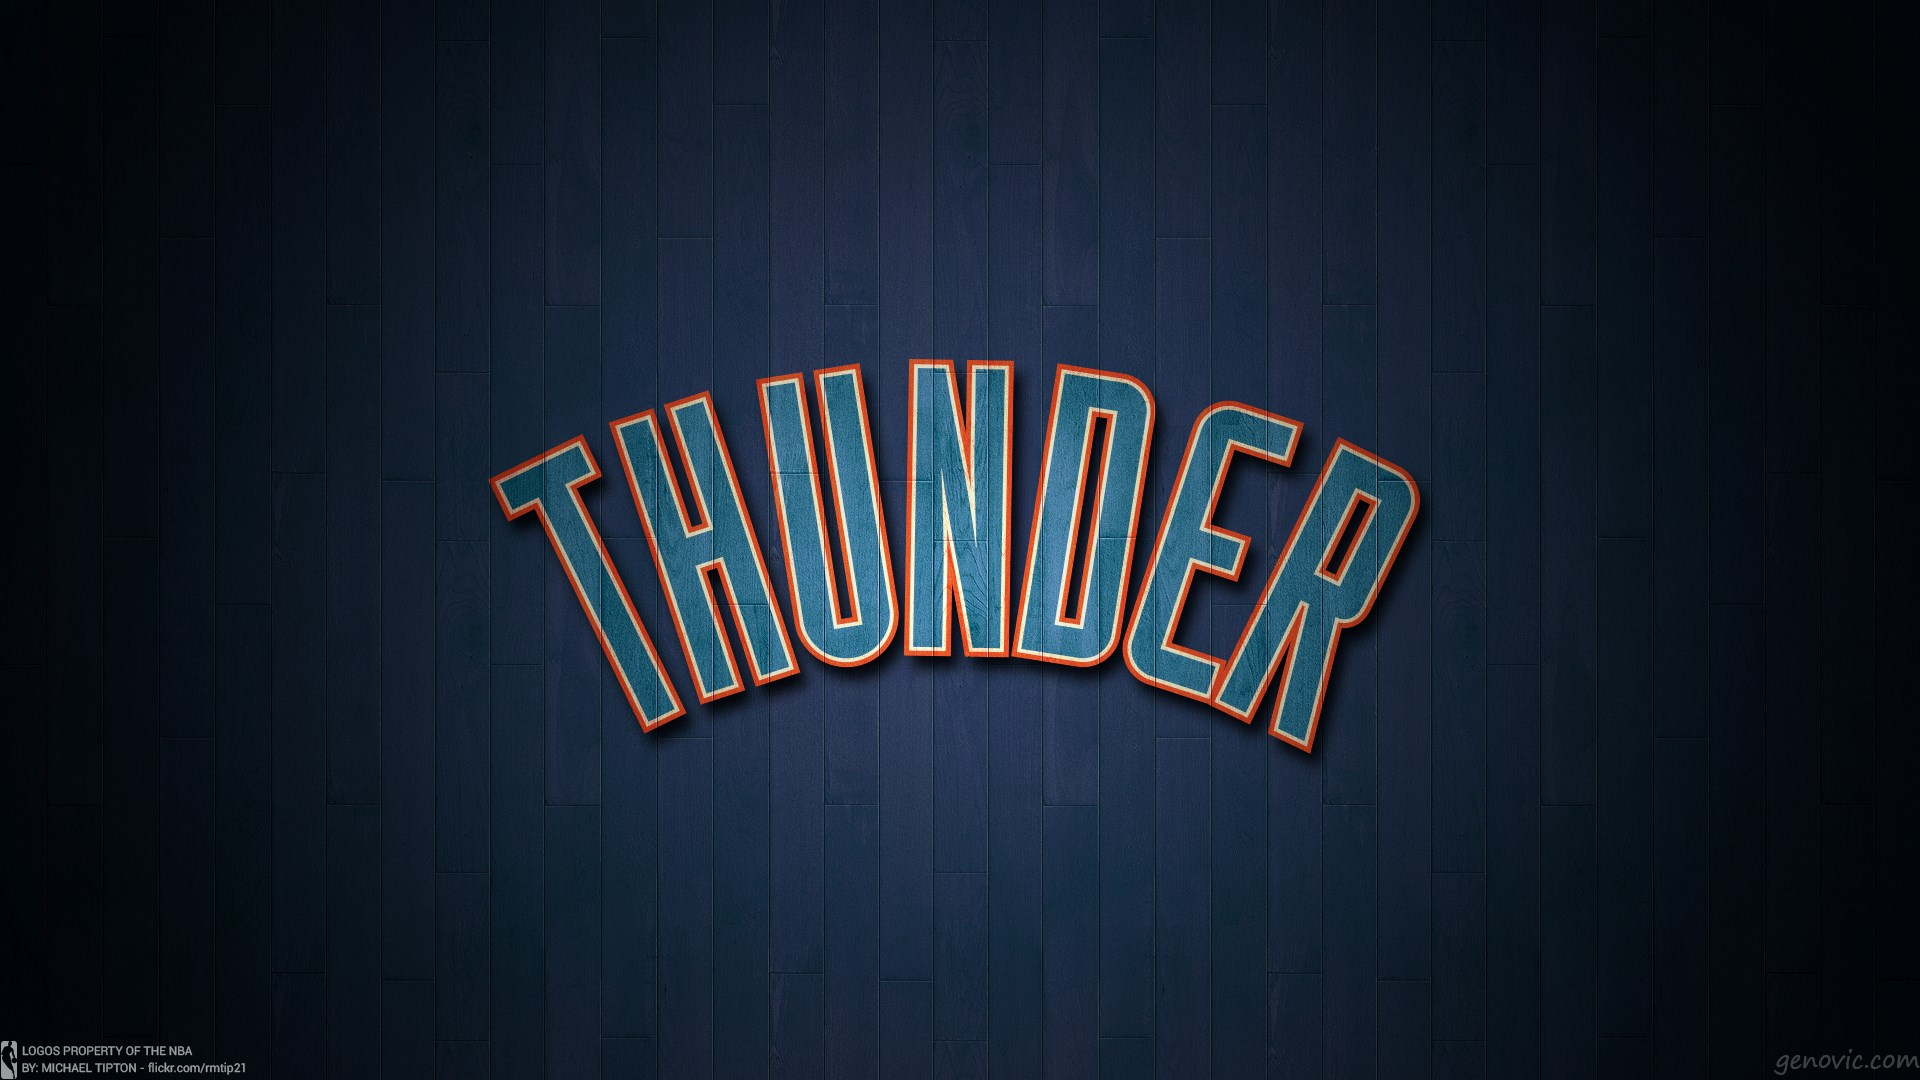 Sixers Wallpaper Iphone X Oklahoma City Thunder Basketball Nba G Wallpaper